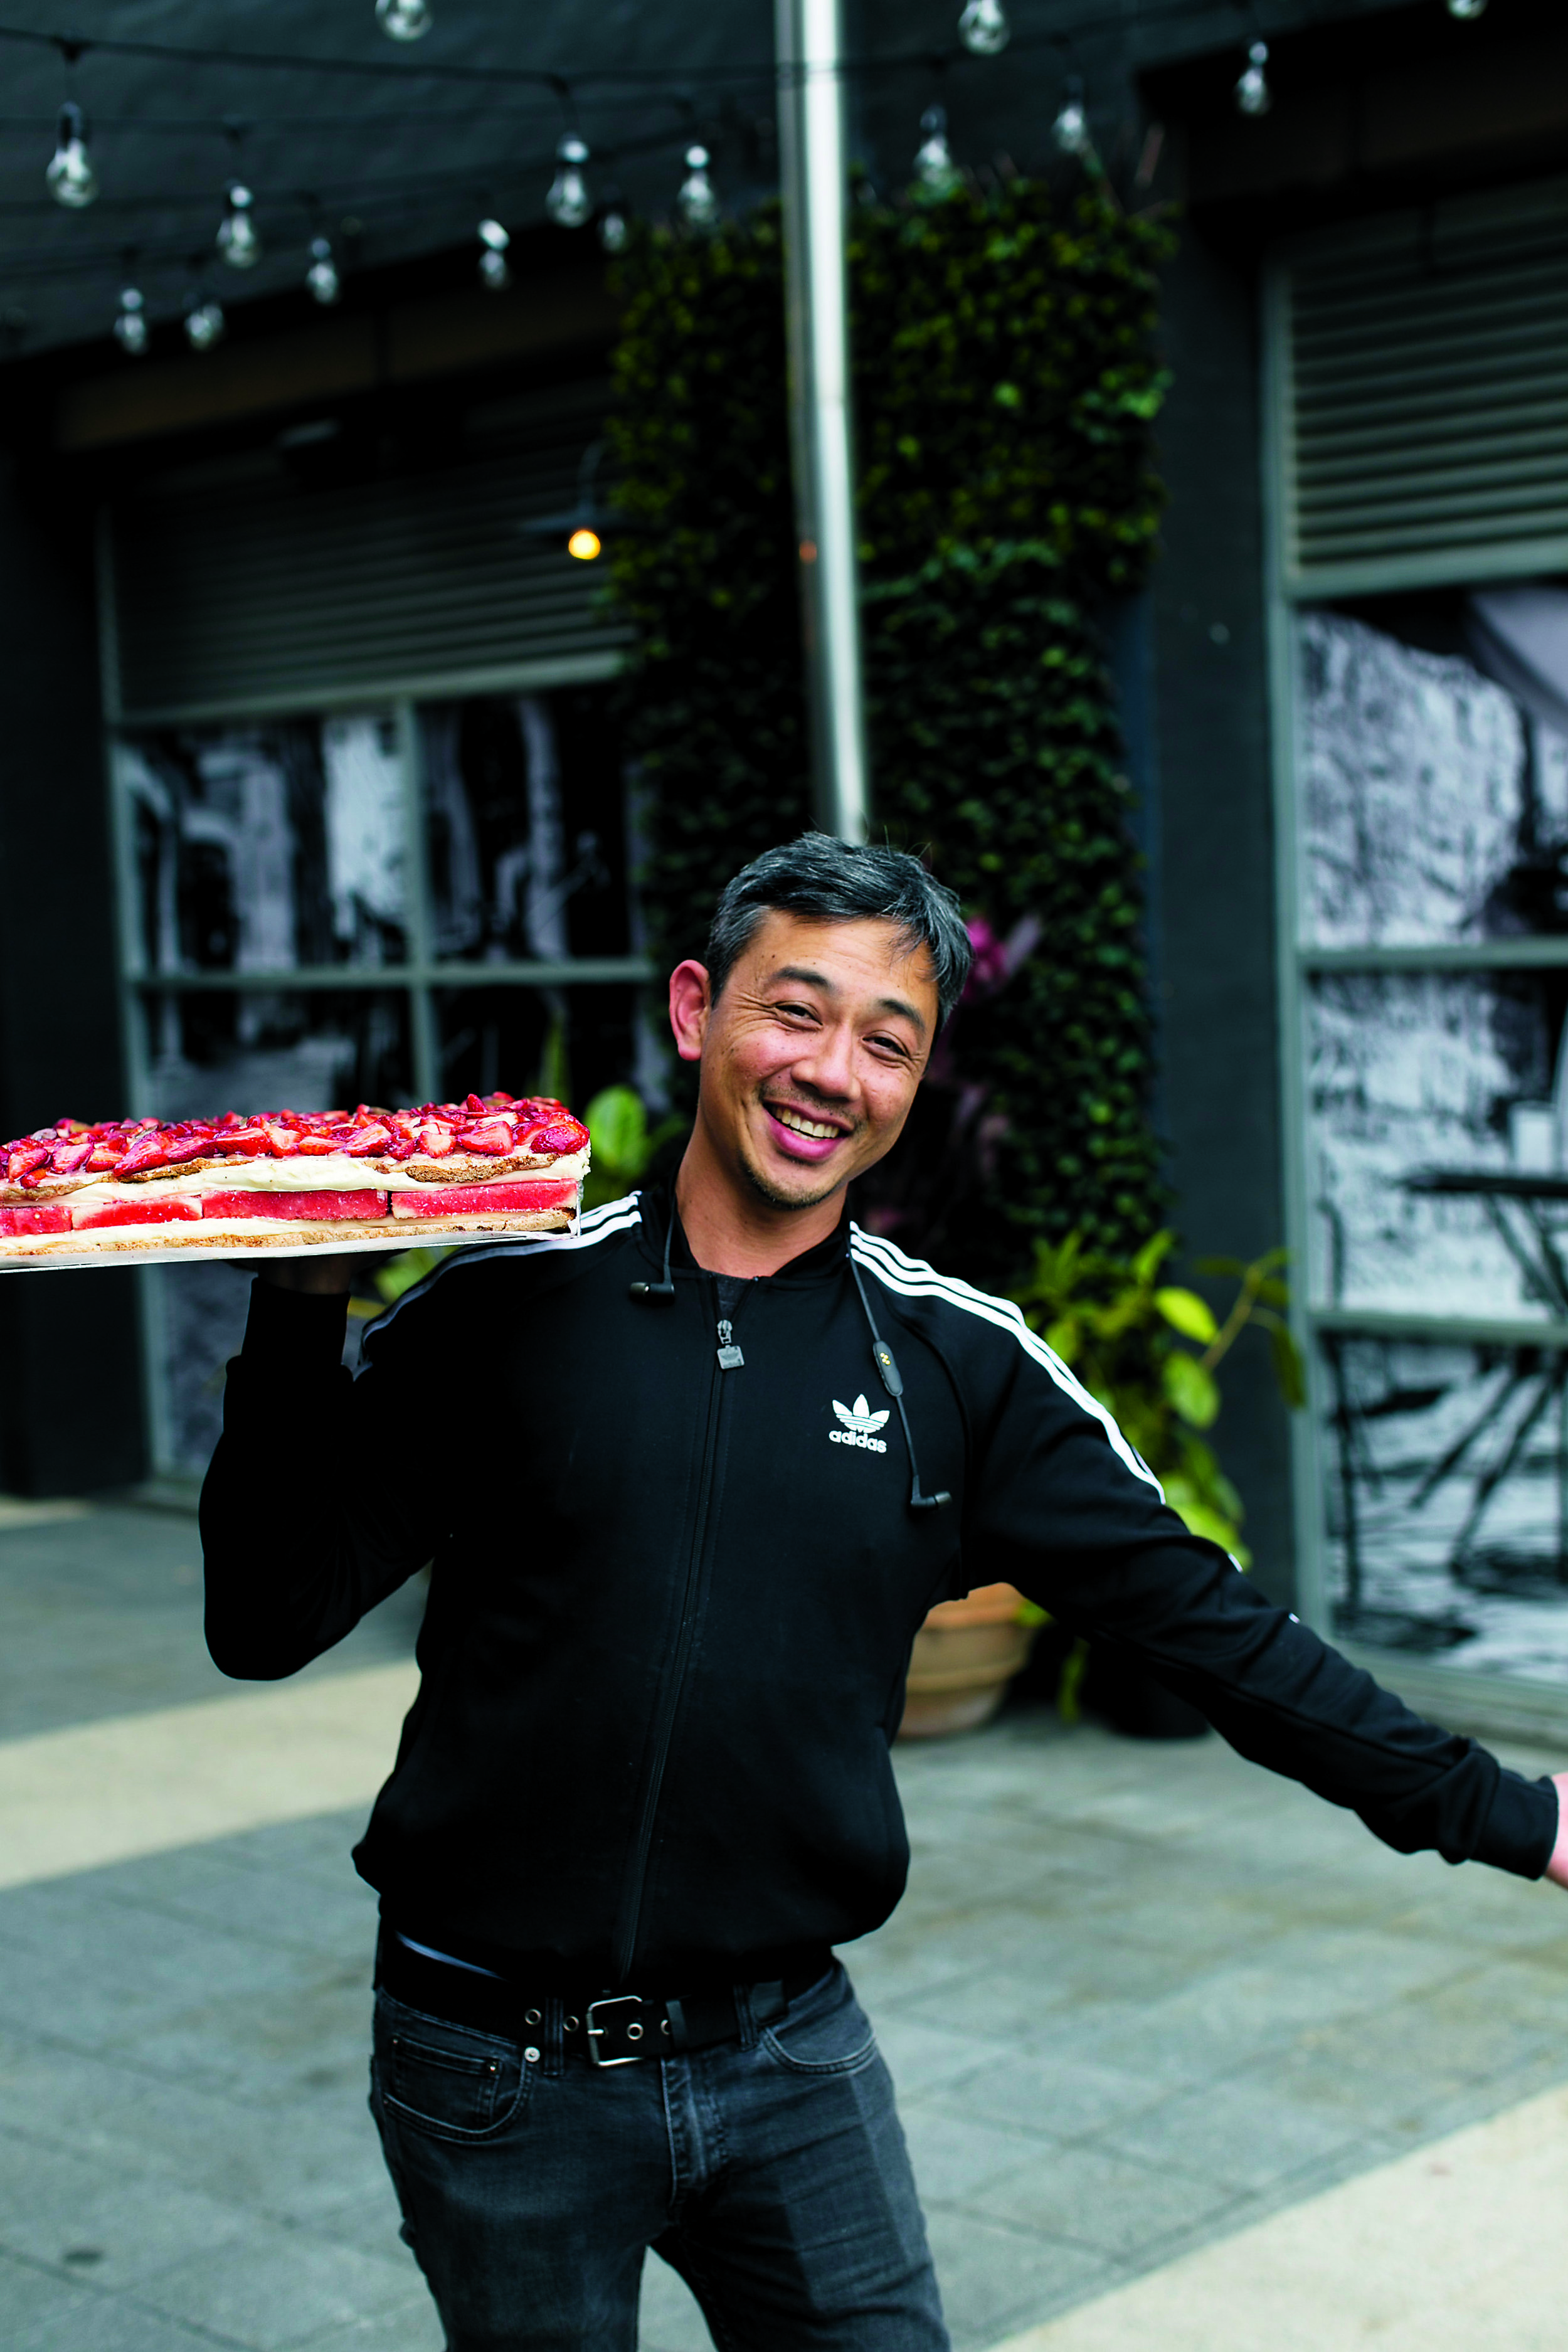 Christopher Thé, owner of Black Star Pastry